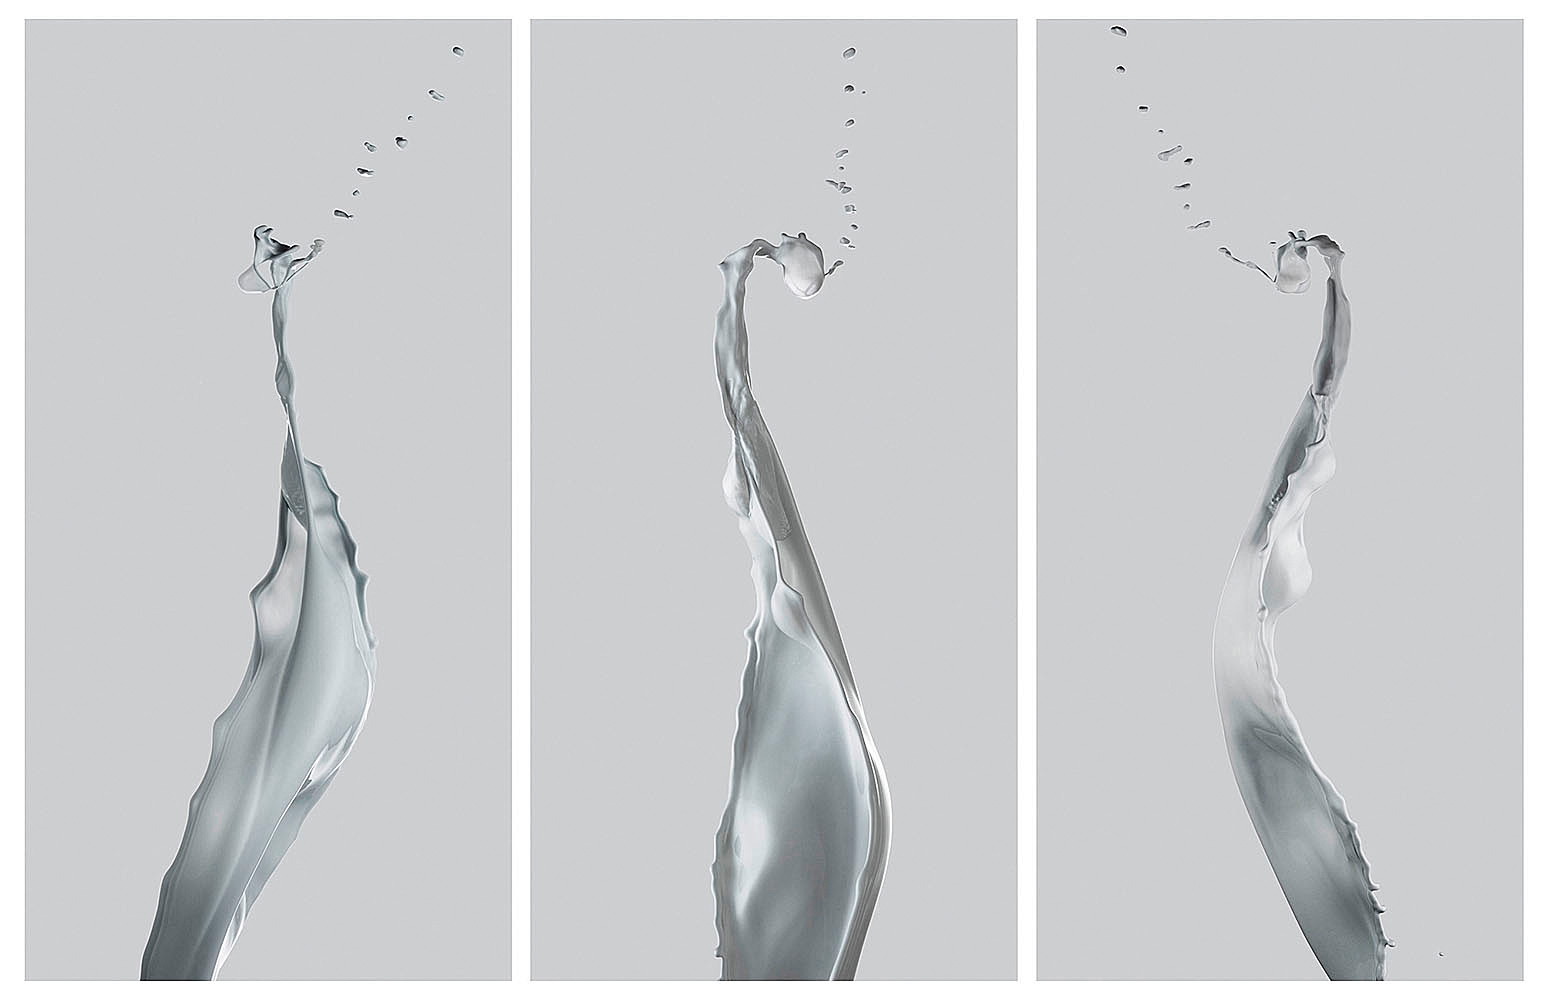 Triptychs By Jonathan Knowles